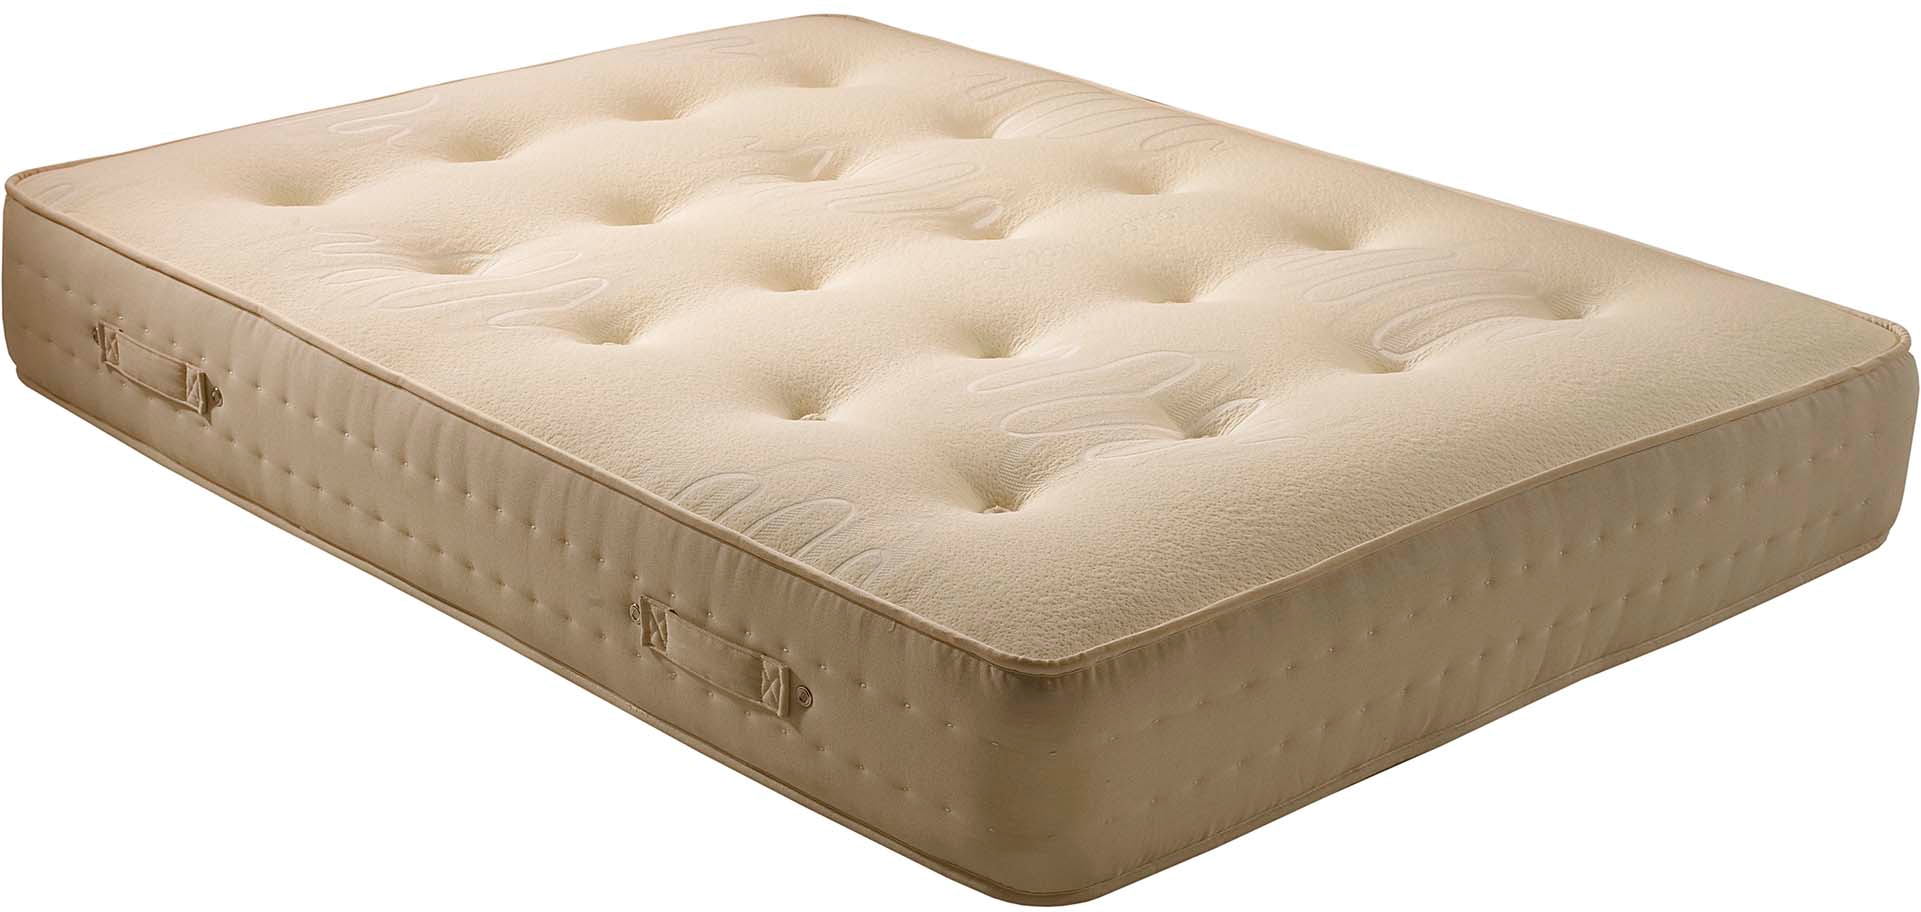 Free Mattress PNG Cliparts, Download Free Clip Art, Free Clip Art on.